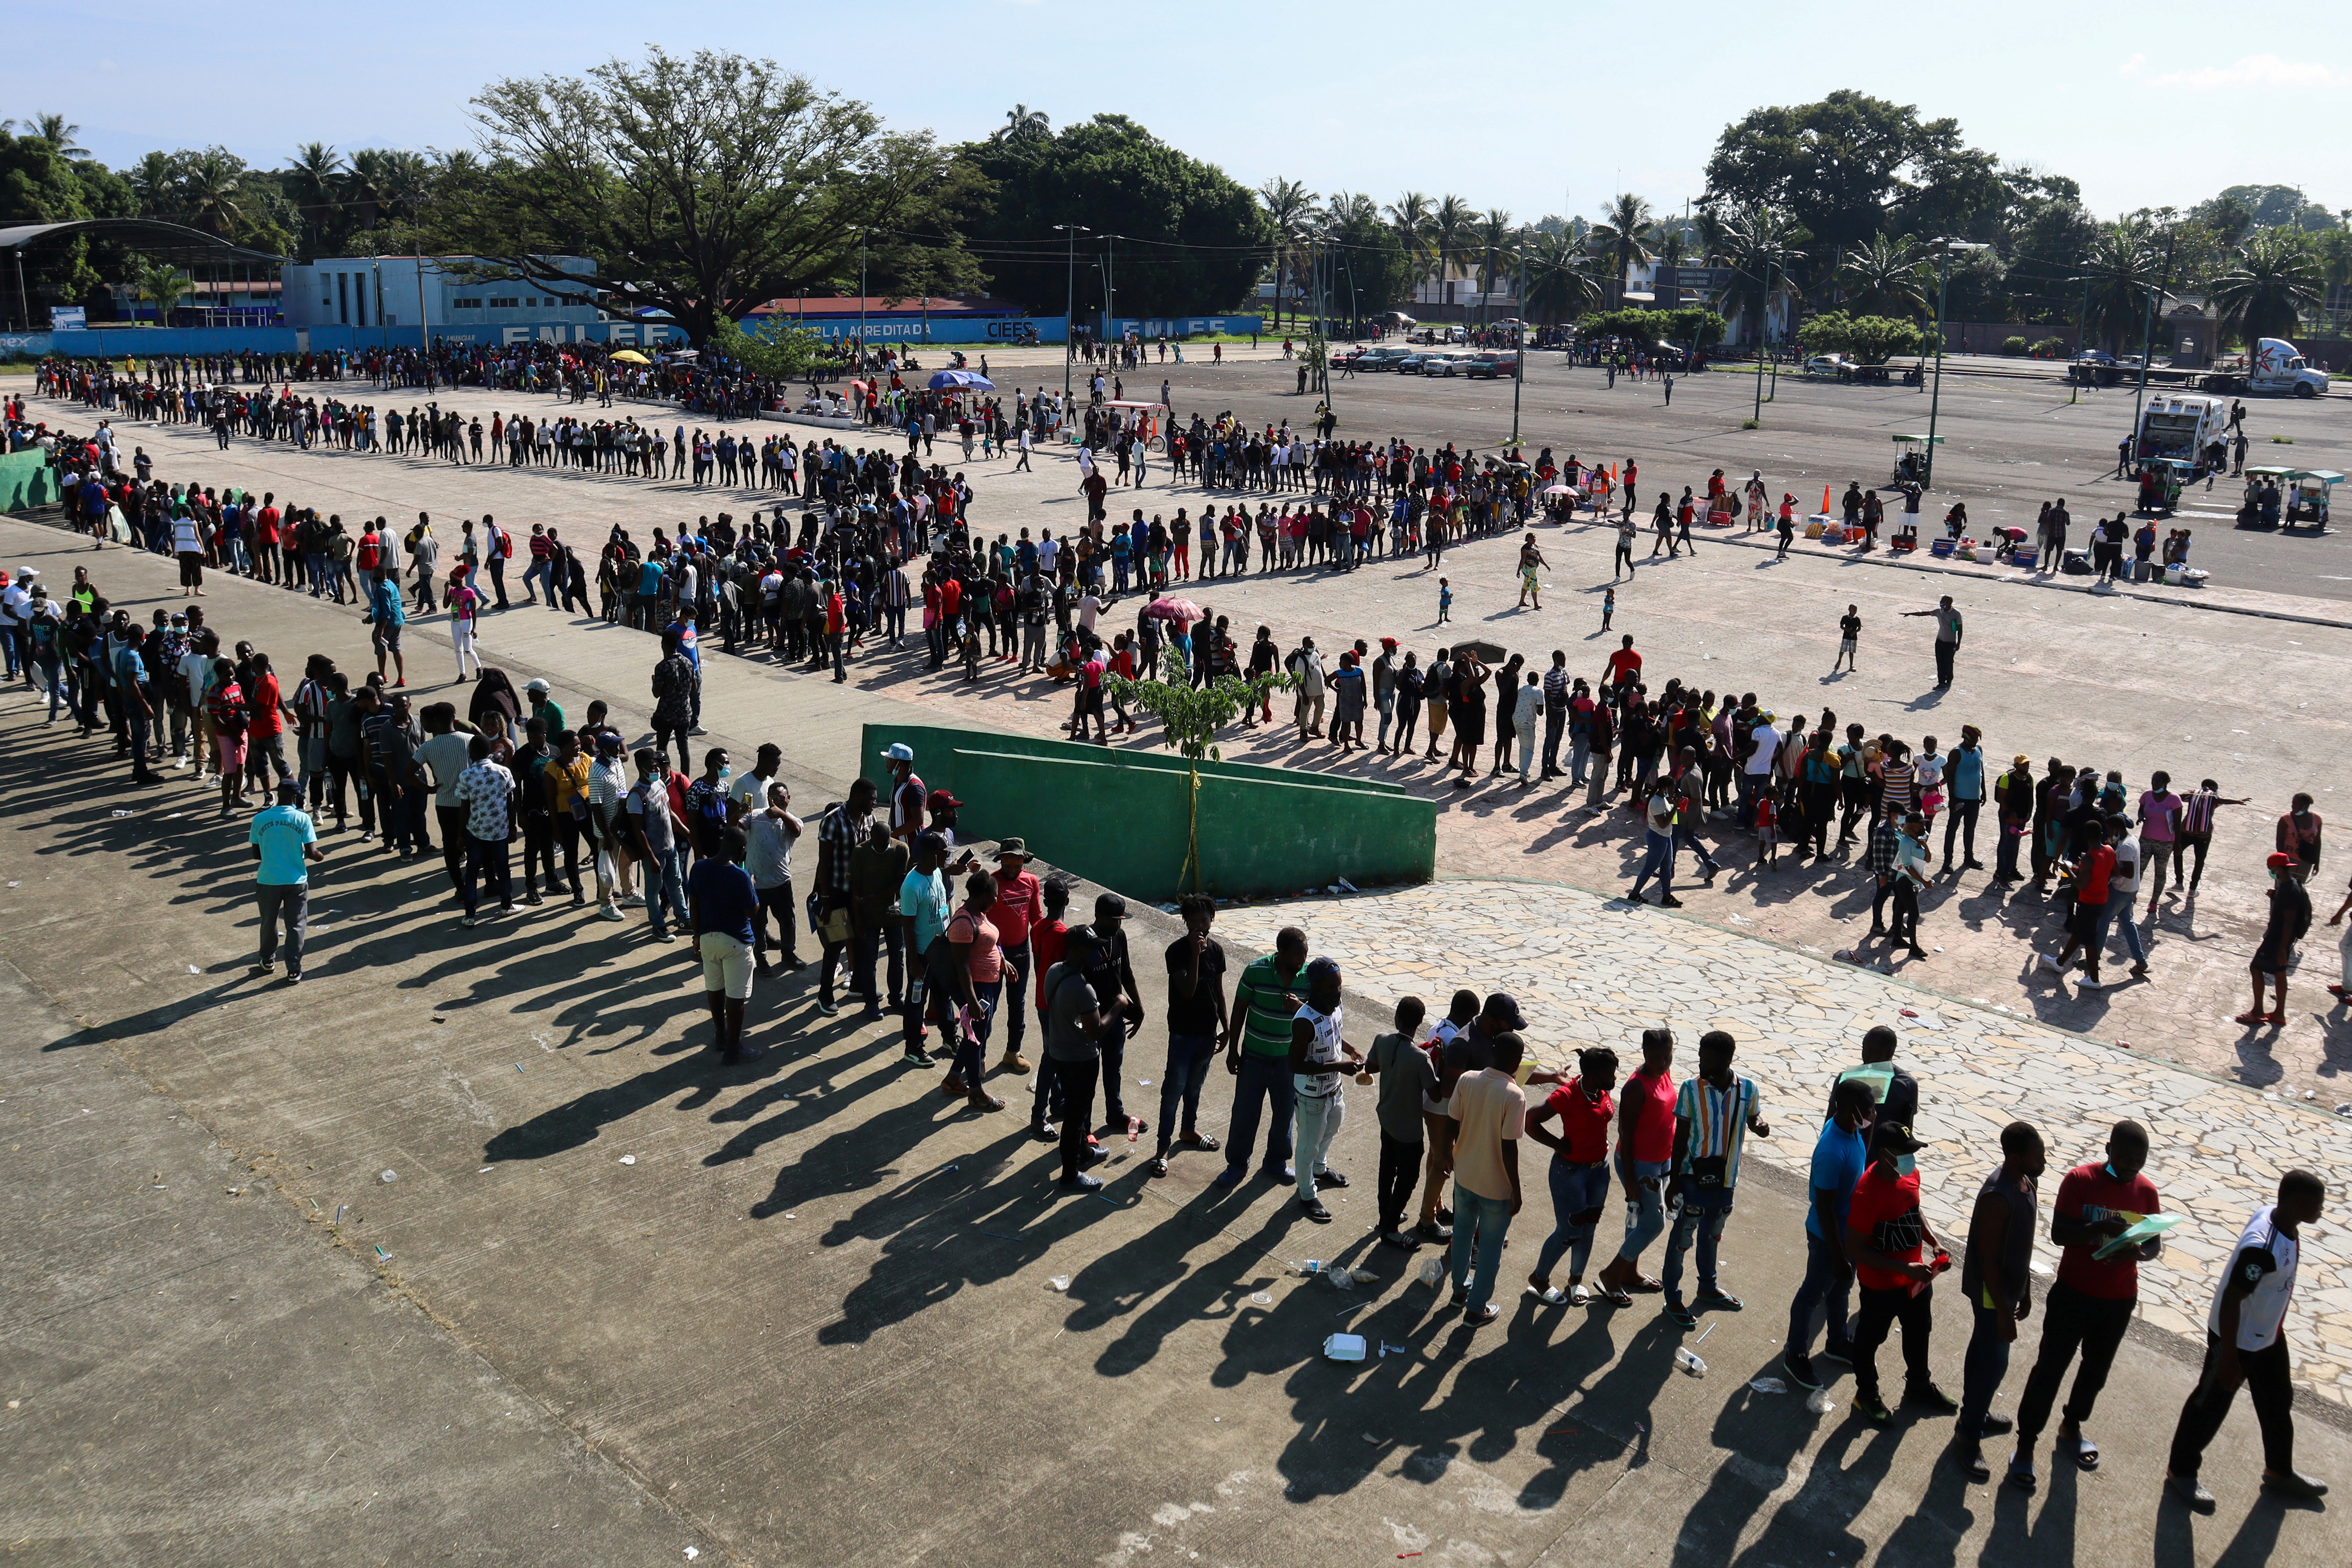 Migrants, mostly Haitians, wait for asylum processing by Mexico's Commission for Refugee Assistance (COMAR) outside a soccer stadium, in Tapachula, Mexico October 12, 2021. REUTERS/Jose Torres